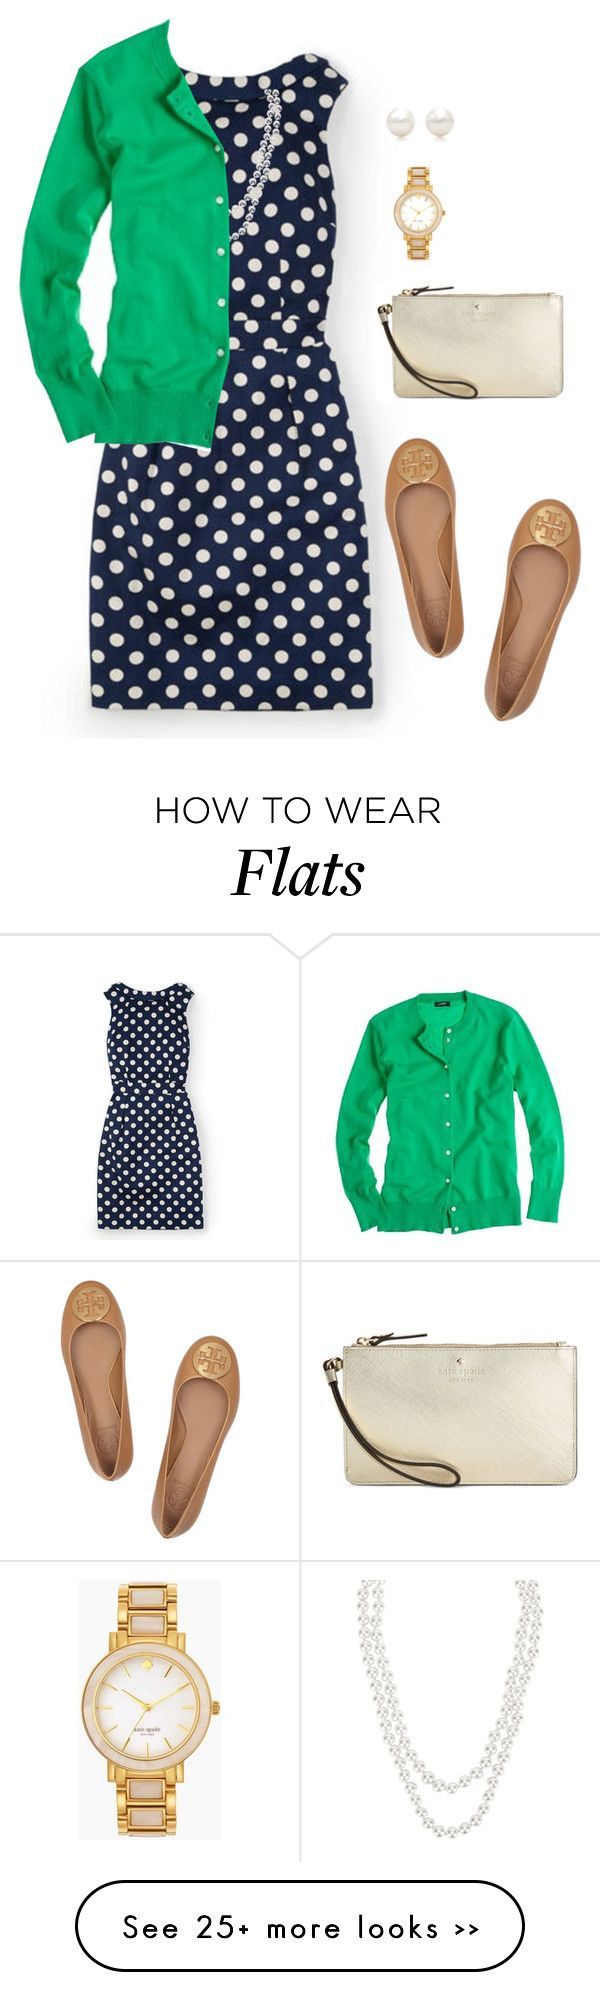 """""""And we know that in ALL THINGS God works for the good of those who love Him. ❤️ encouragement for me today!"""" by sc-prep-girl on Polyvore featuring Boden, Henri Bendel, J.Crew, Tory Burch, Kate Spade and Tiffany & Co."""